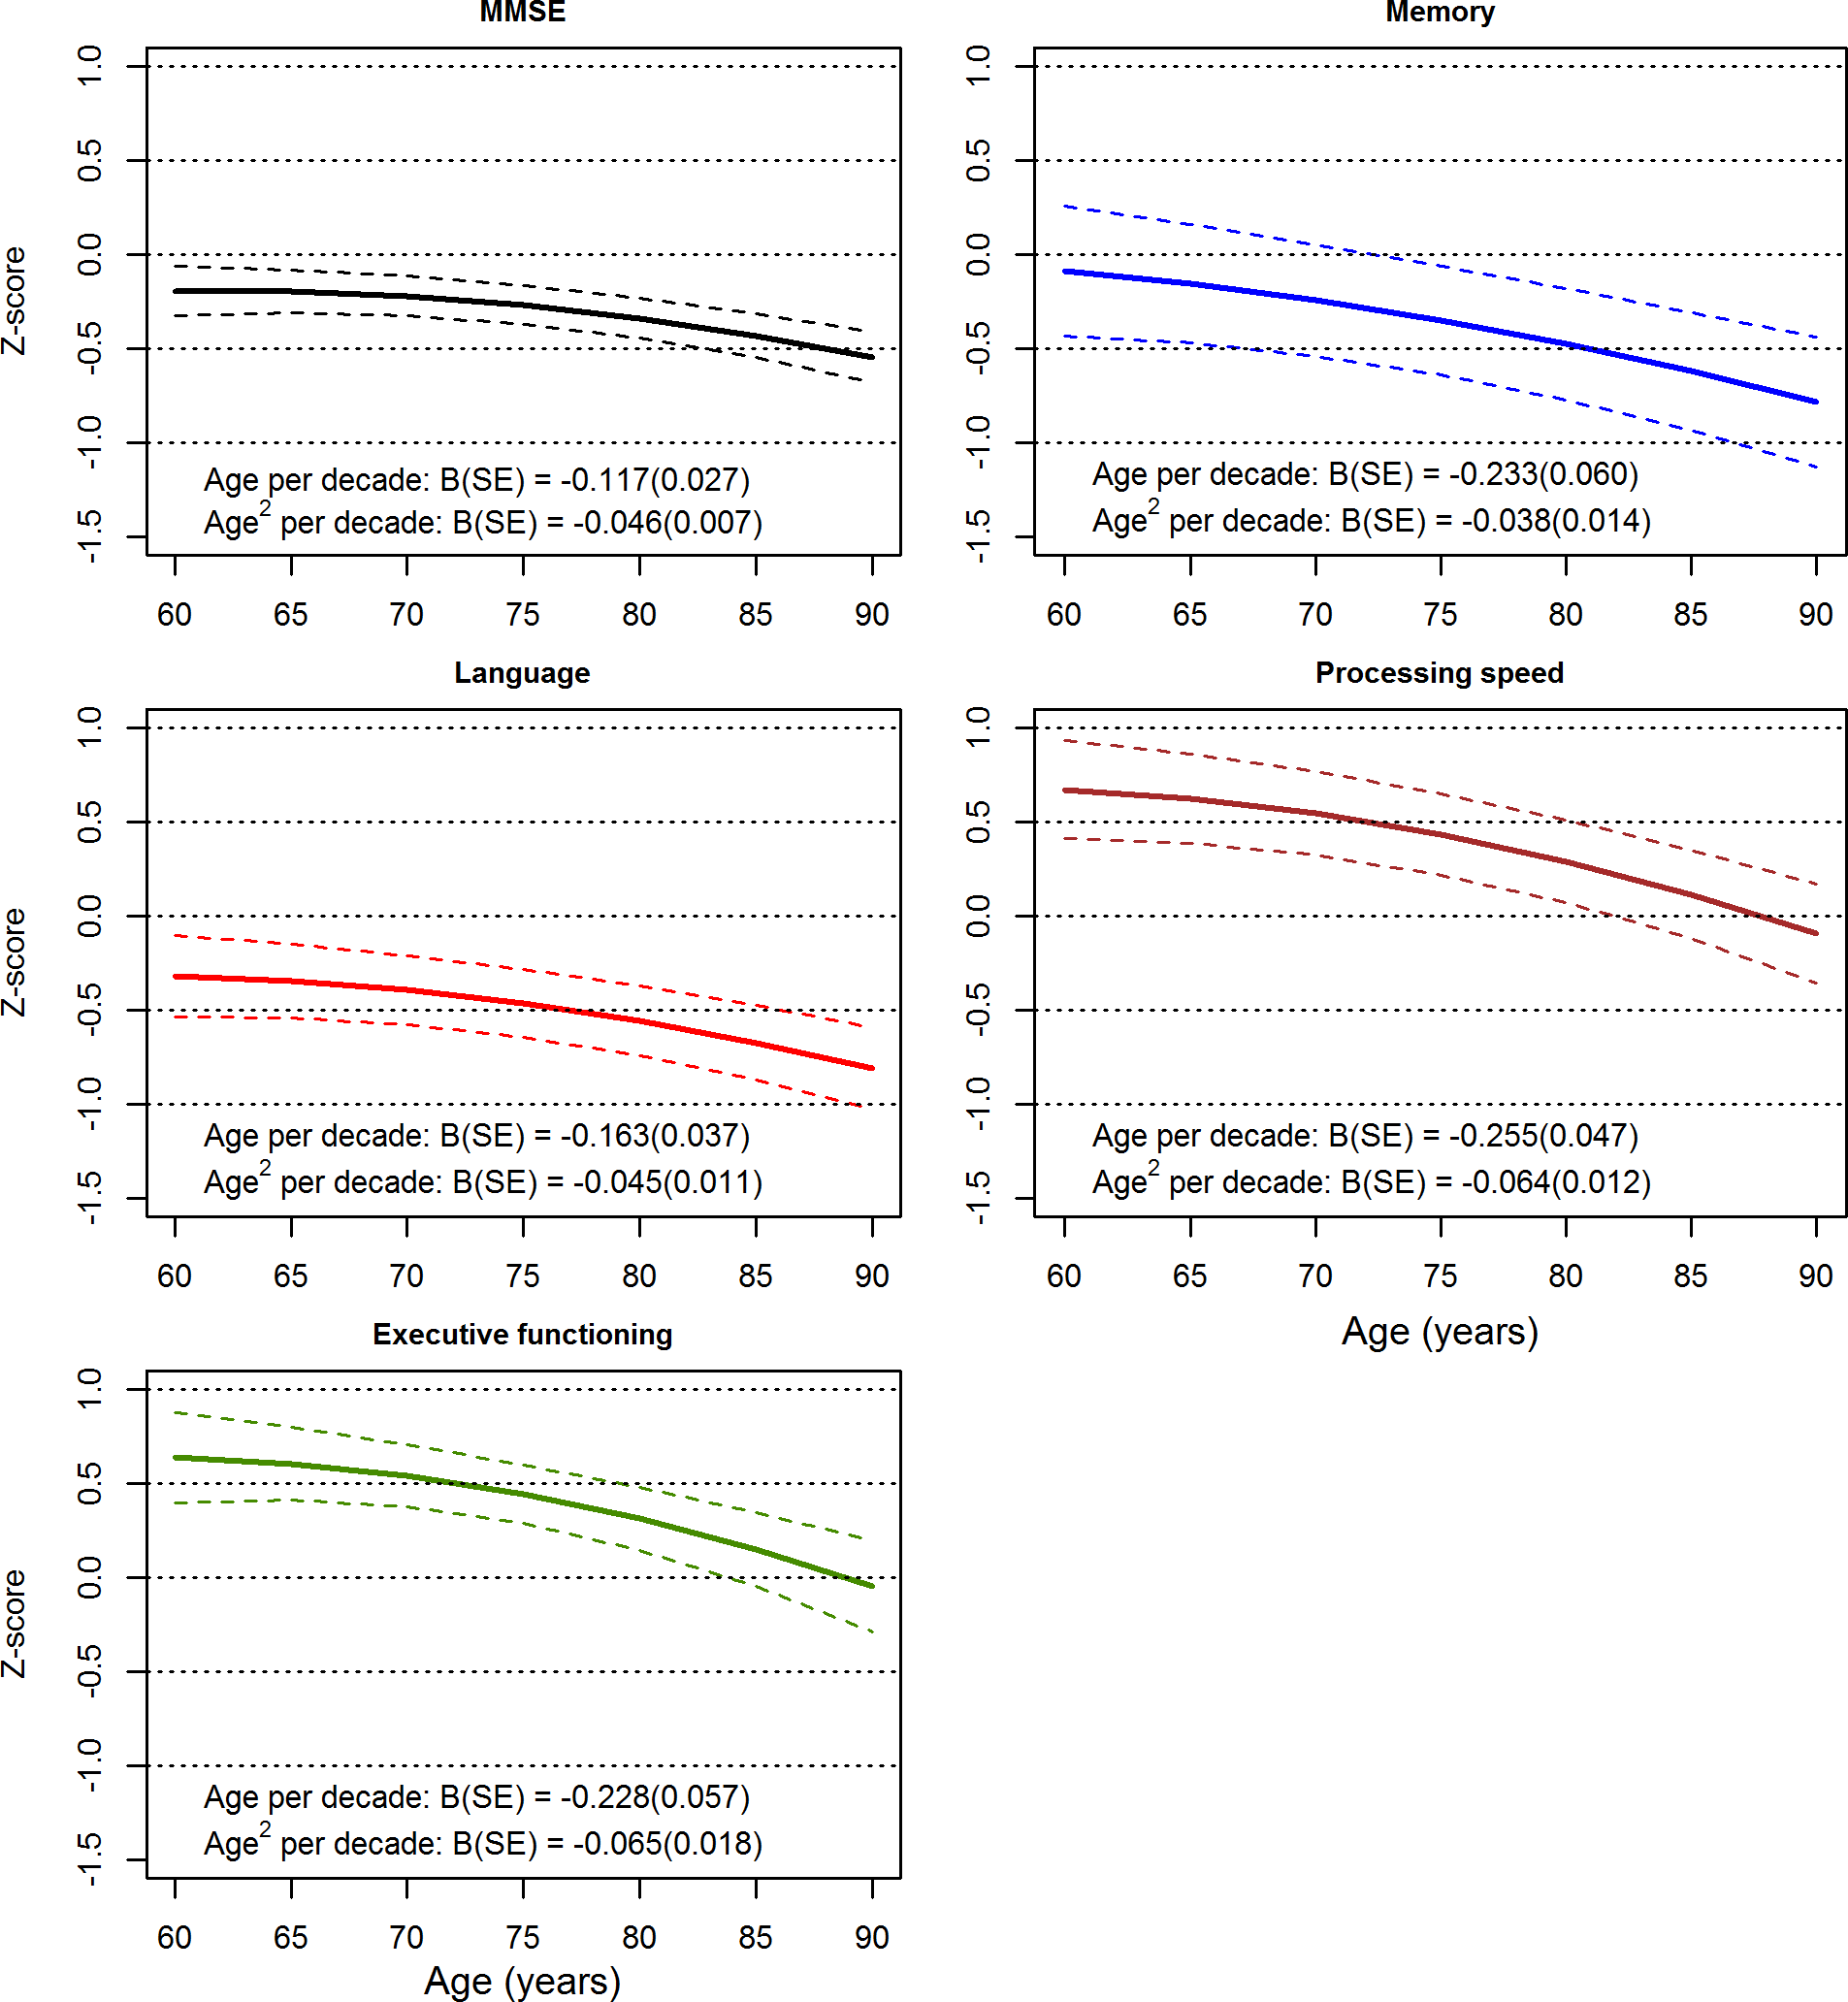 Longitudinal variation with age for the Mini-Mental State Examination (MMSE) and cognitive domains.